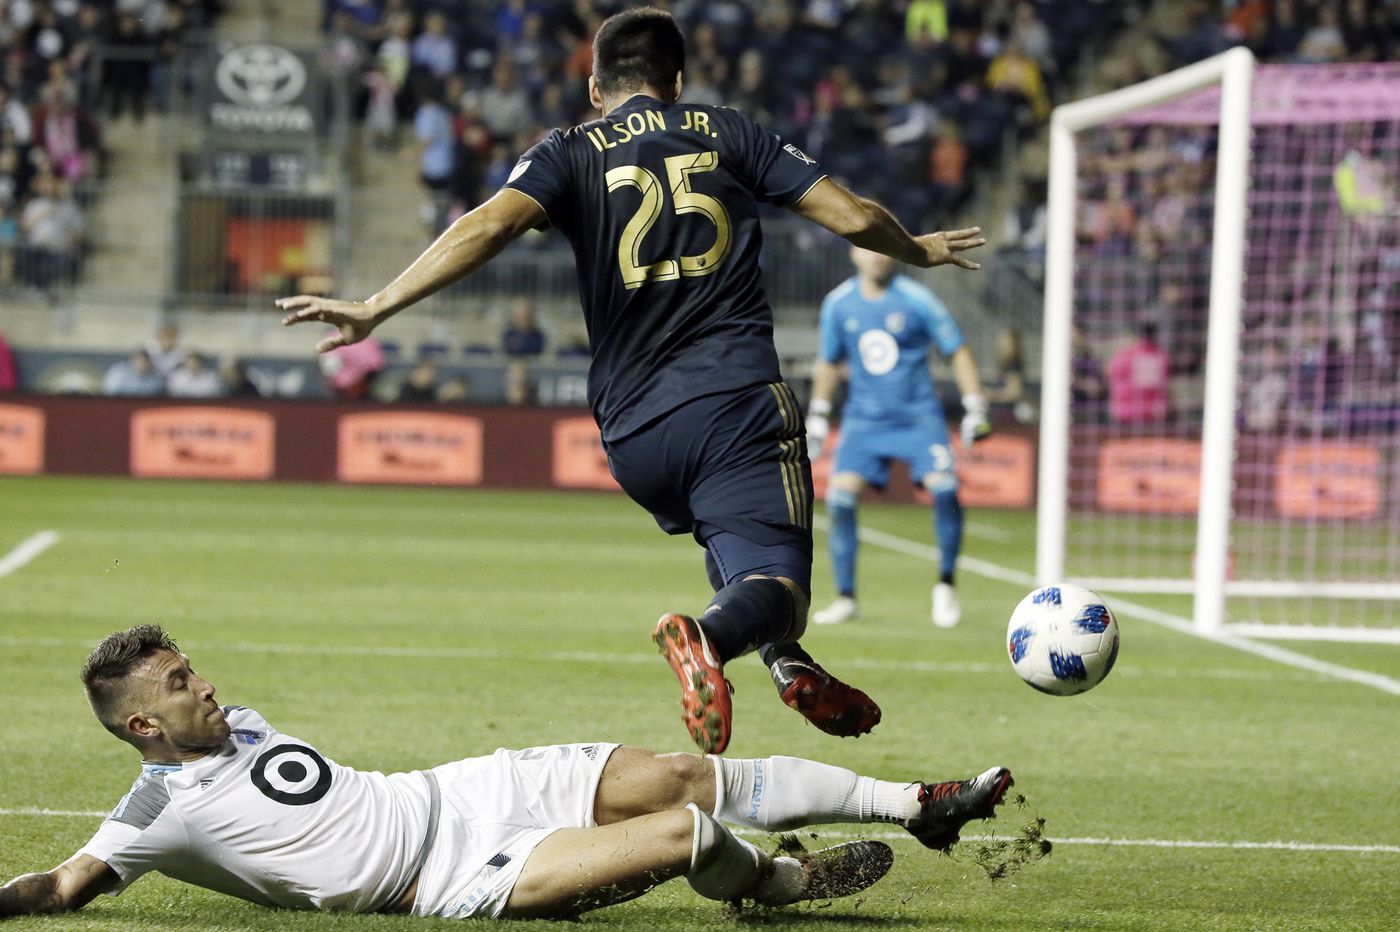 The Union have the inside track to a home playoff game, but they might not keep it